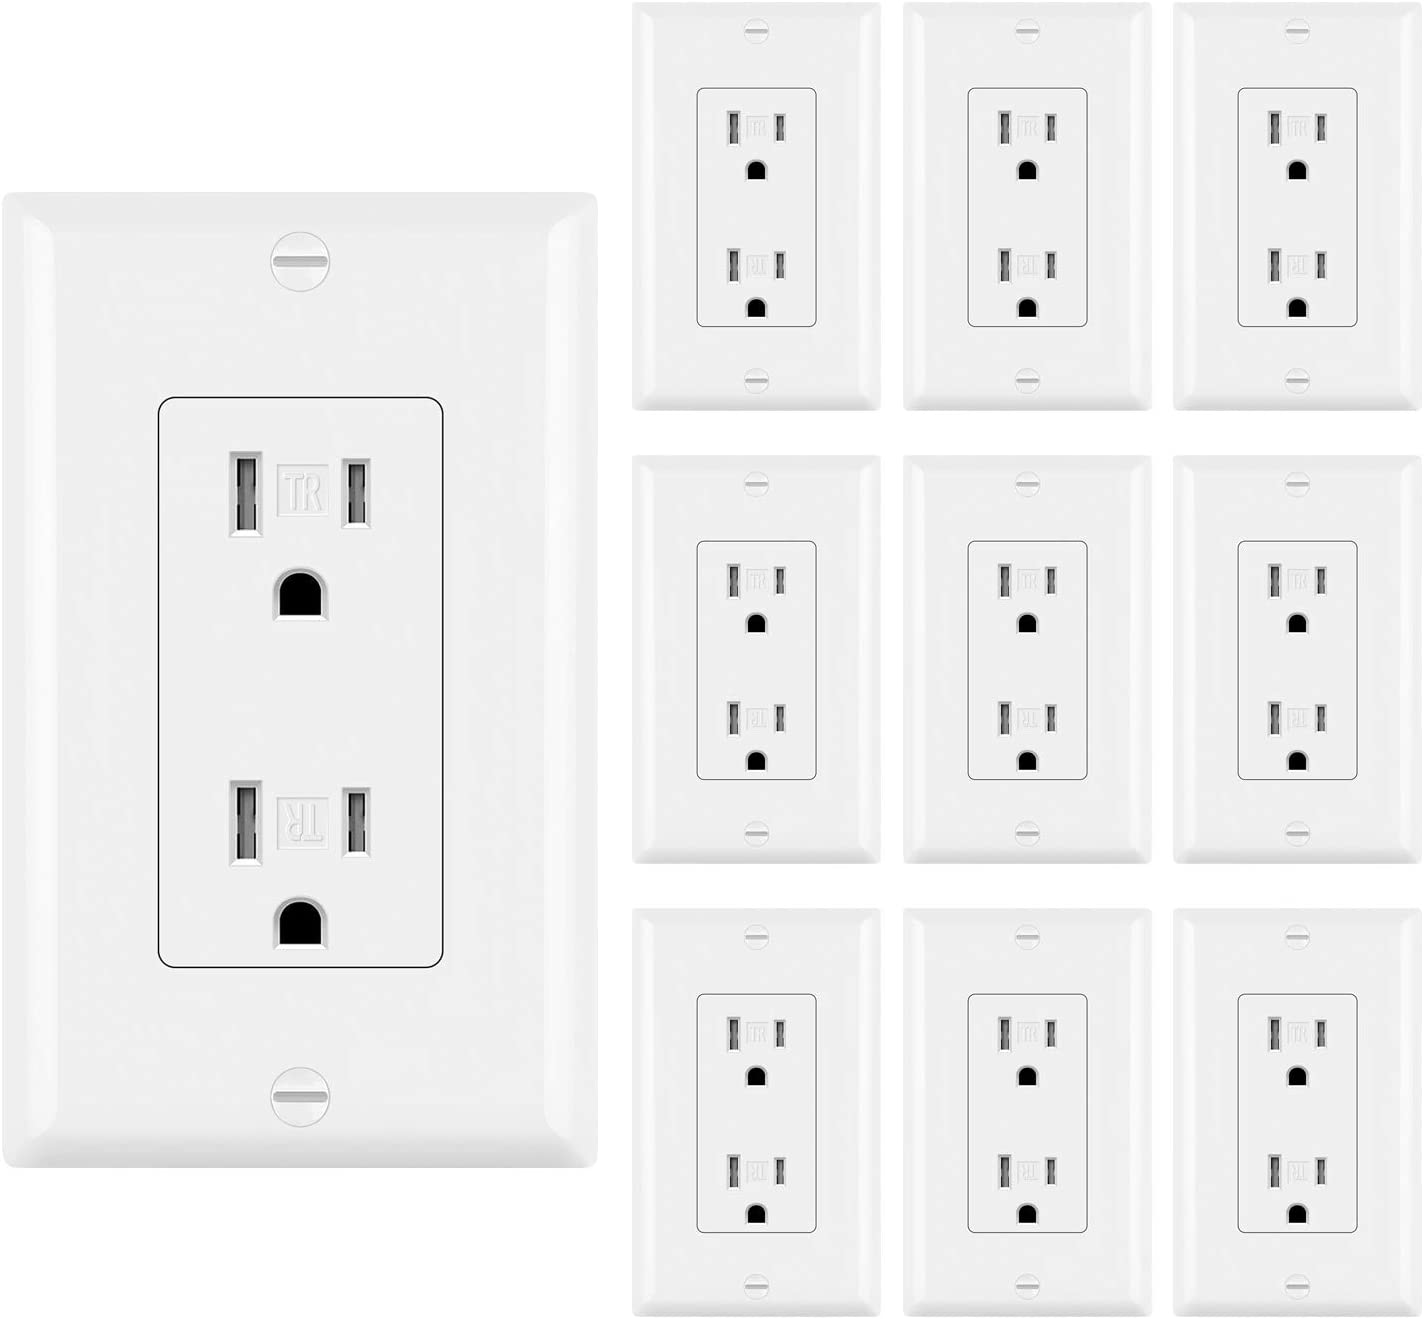 [10 Pack] BESTTEN 15A Decorator Wall Outlet, Tamper Resistant Receptacle, 15A/125V/1875W, Wallplate Included, UL Listed, White